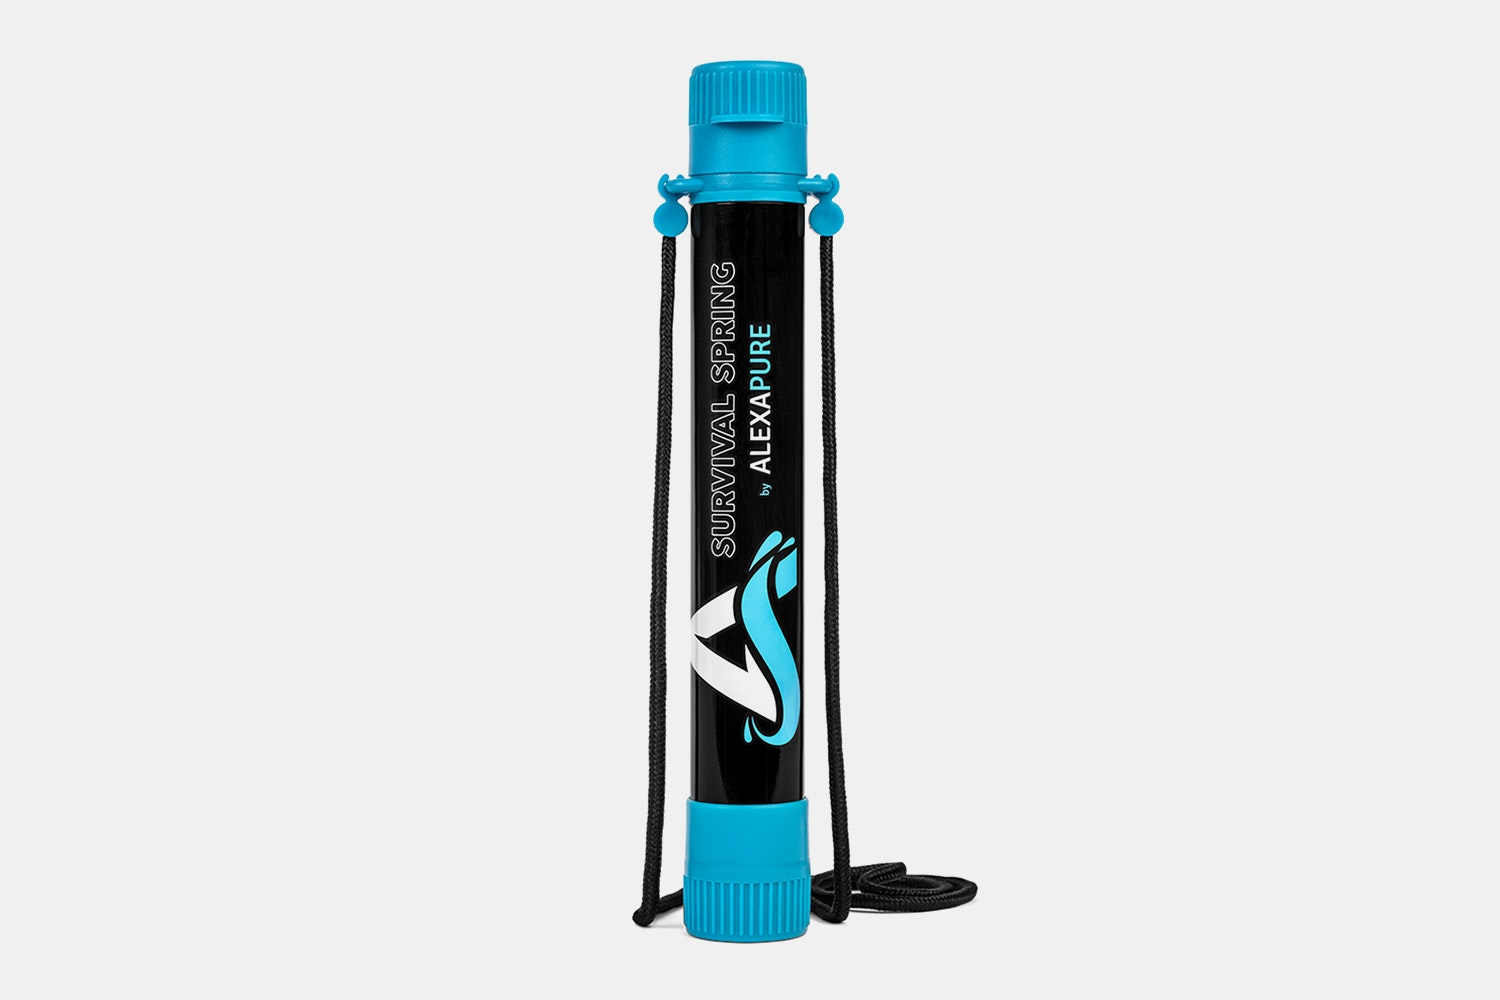 Survival Spring Personal Water Filter (+ $14)